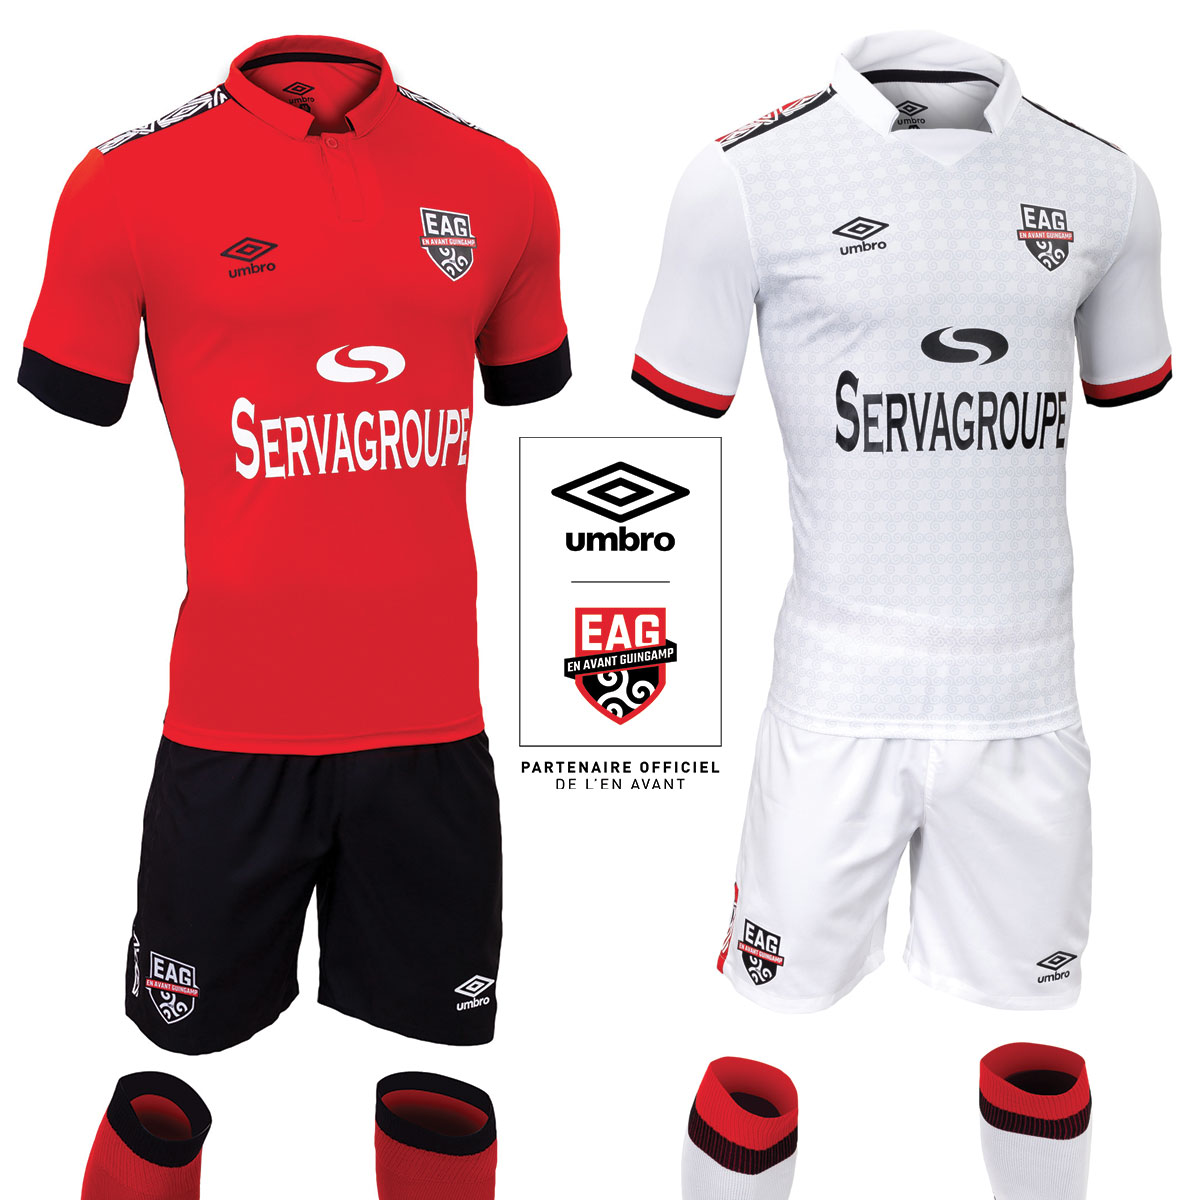 https://www.eaguingamp.com/voy_content/uploads/2019/06/kits-2019-2020.jpg